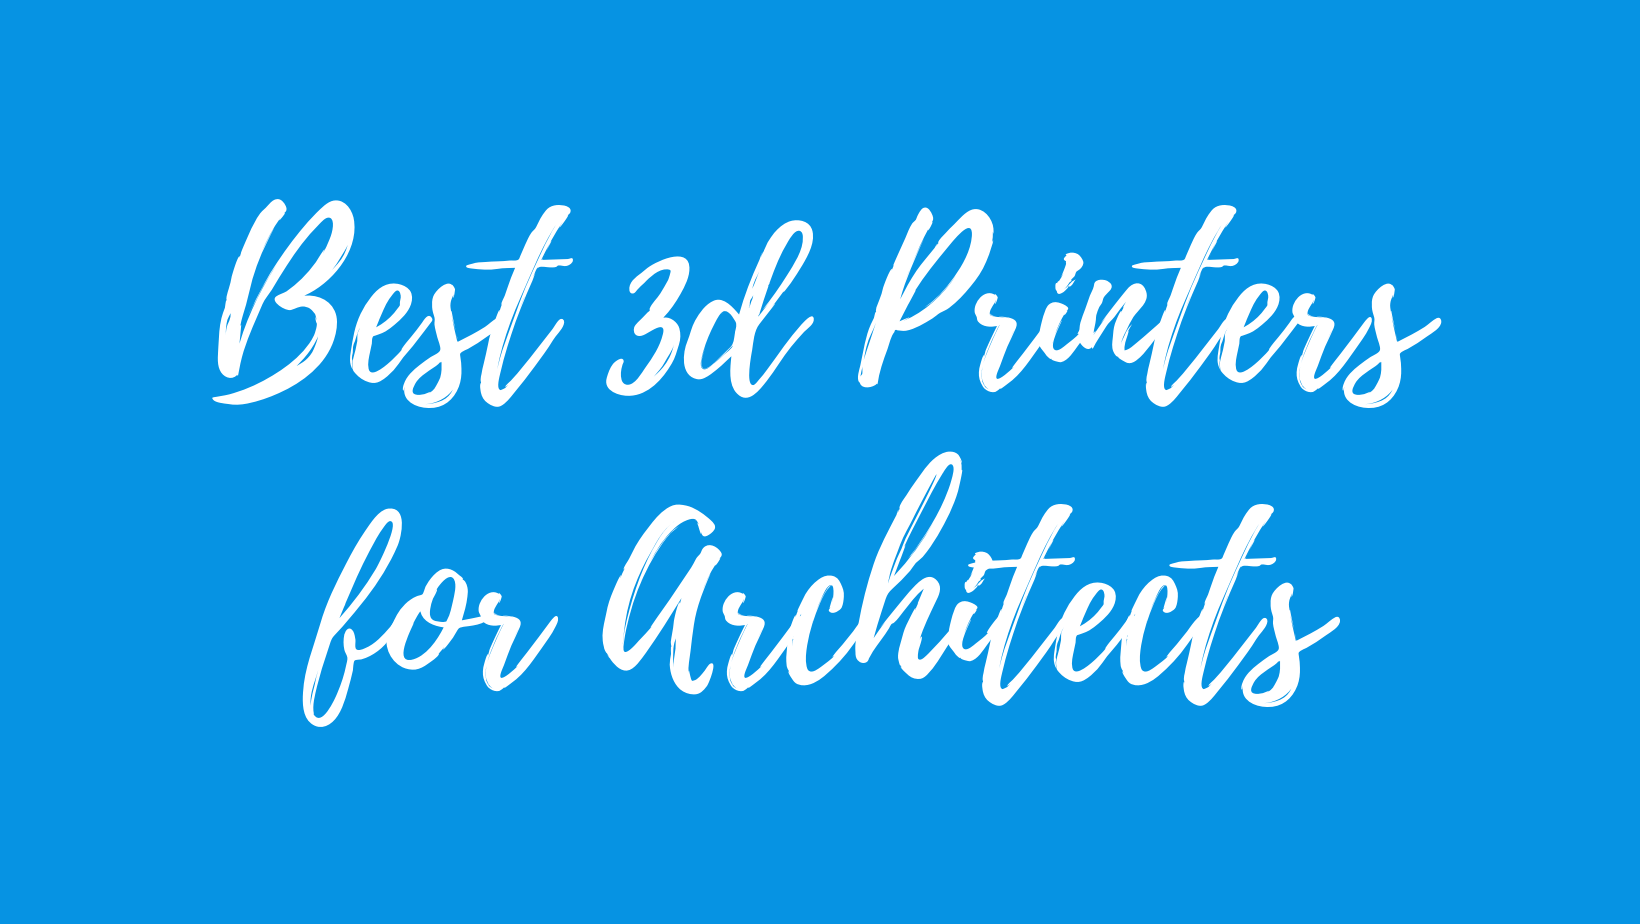 best 3d printer for architects